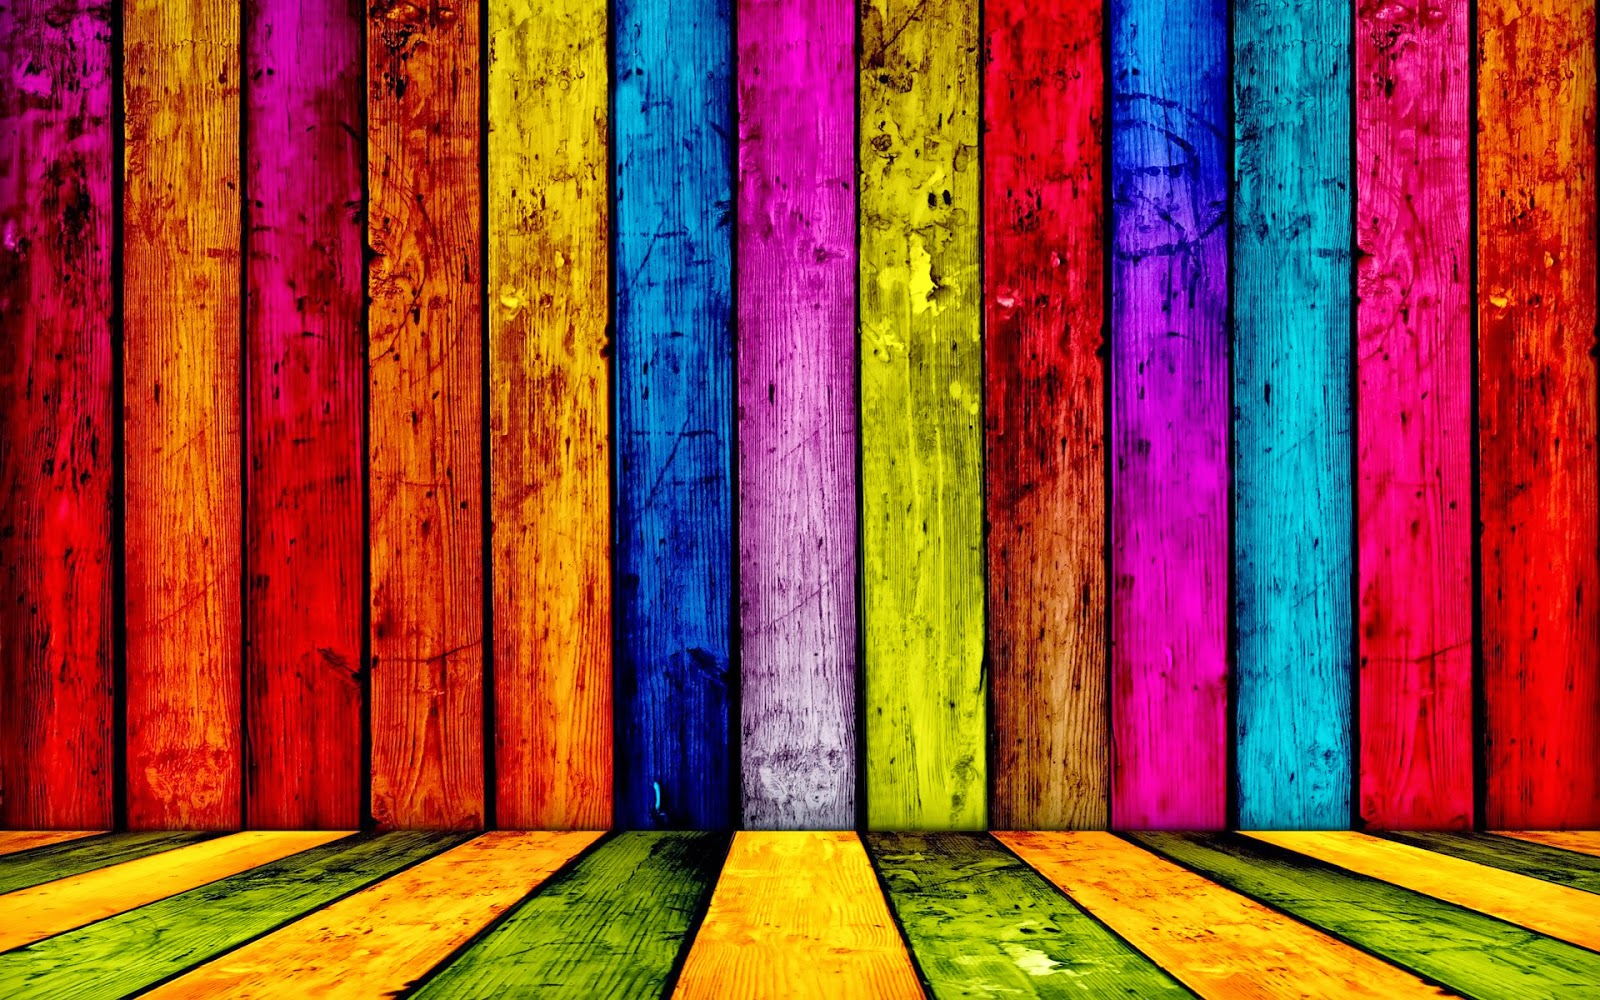 colorful wallpapers full hd, download colorful hd wallpaper | full